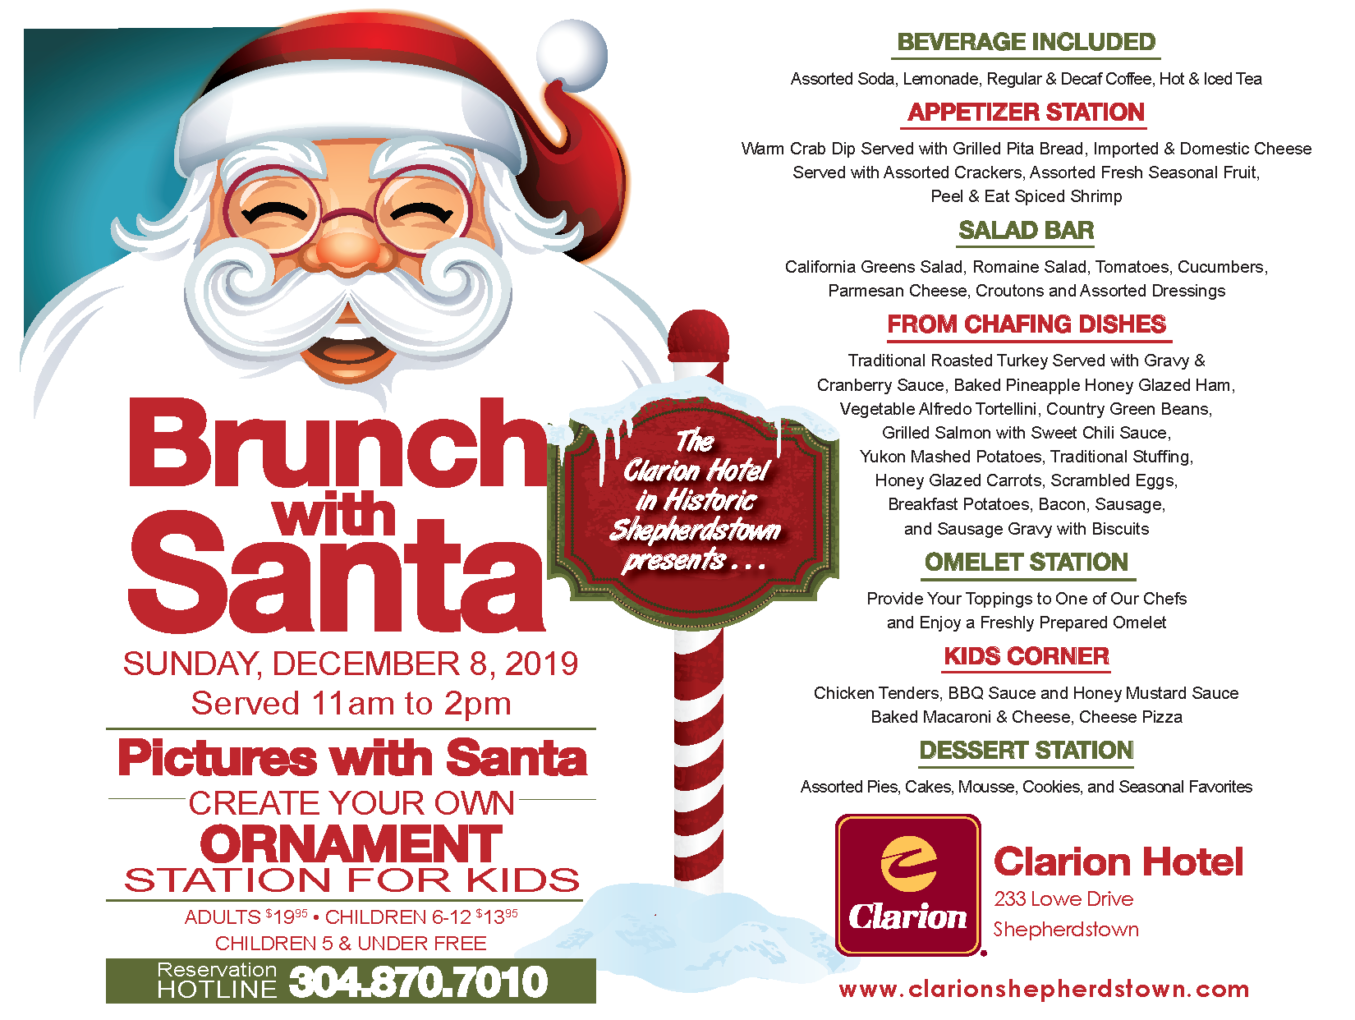 Brunch With Santa—December 8th